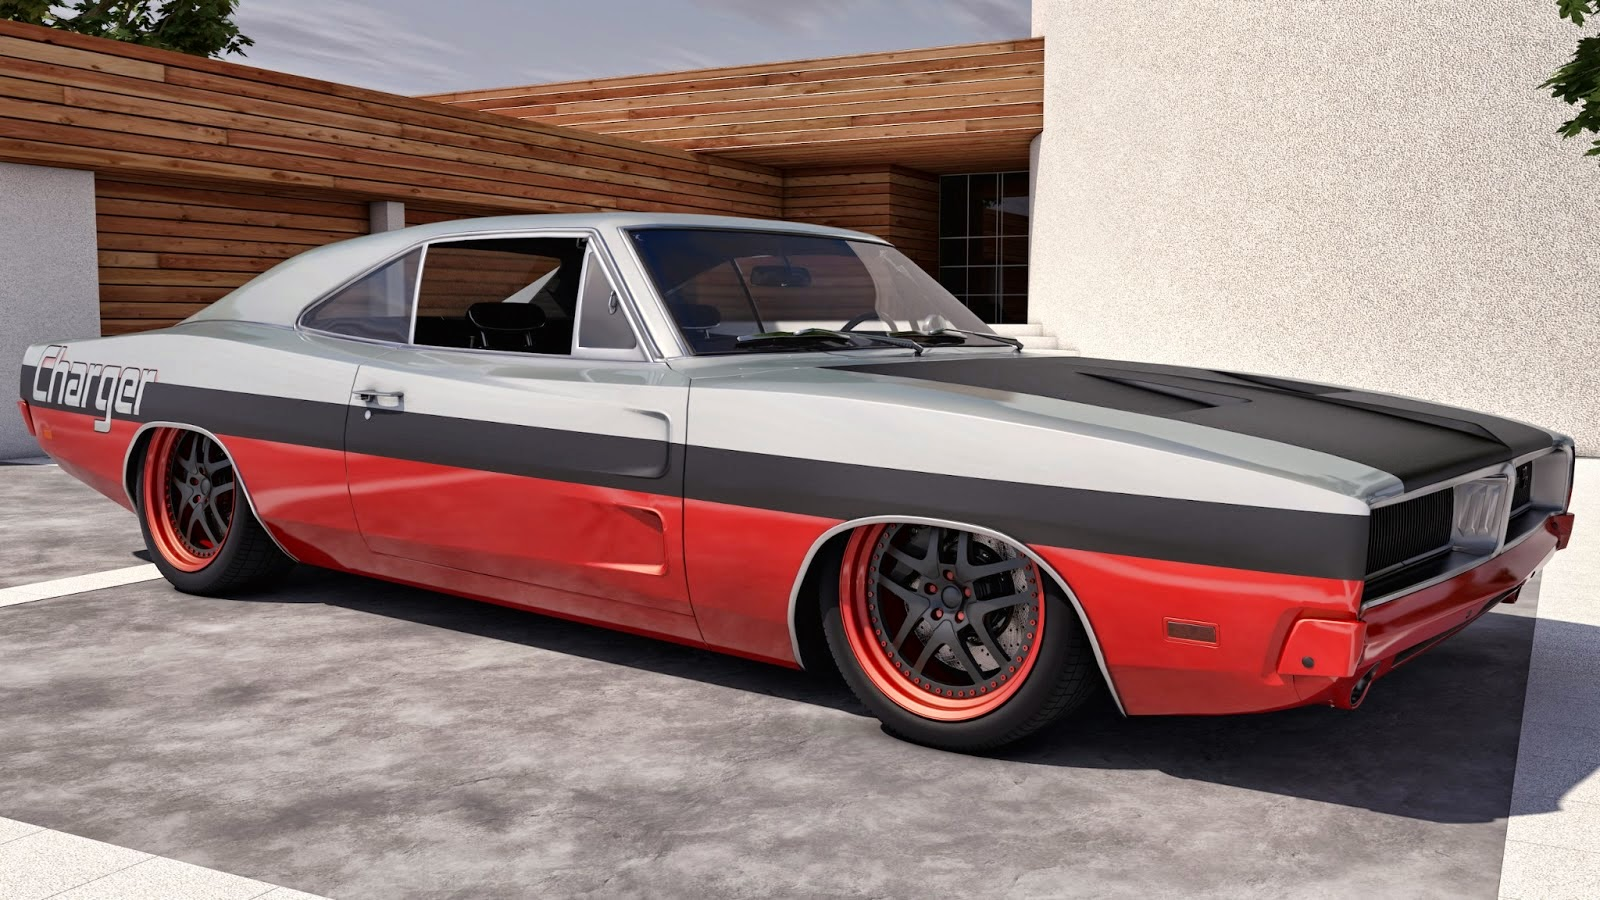 69 Dodge Charger Wallpaper 1K Wallpapers 1600x900